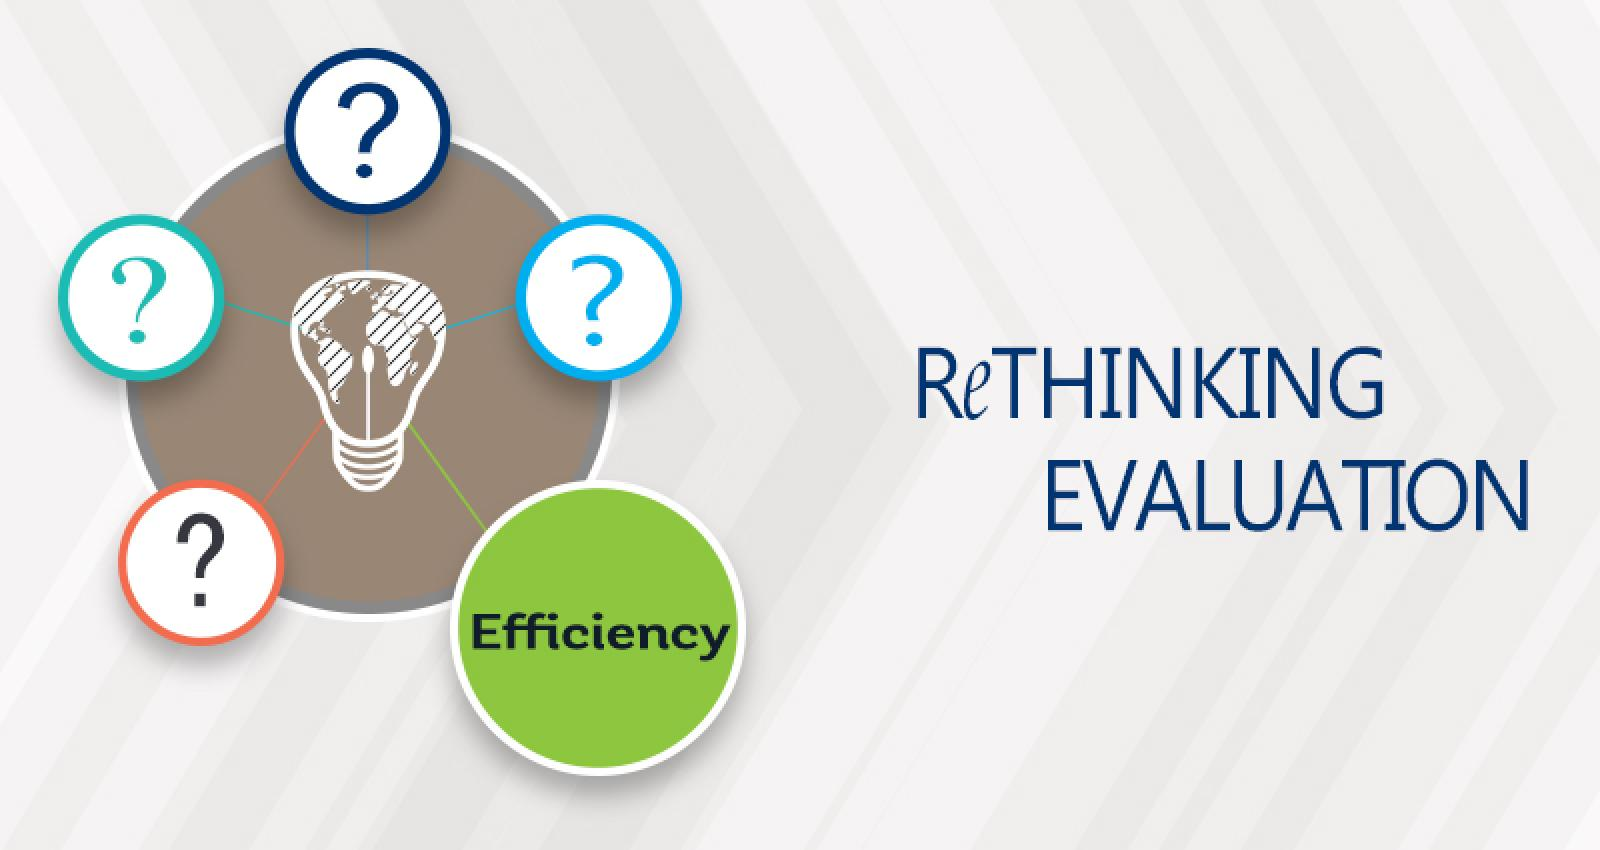 Rethinking Evaluation - Efficiency, Efficiency, Efficiency